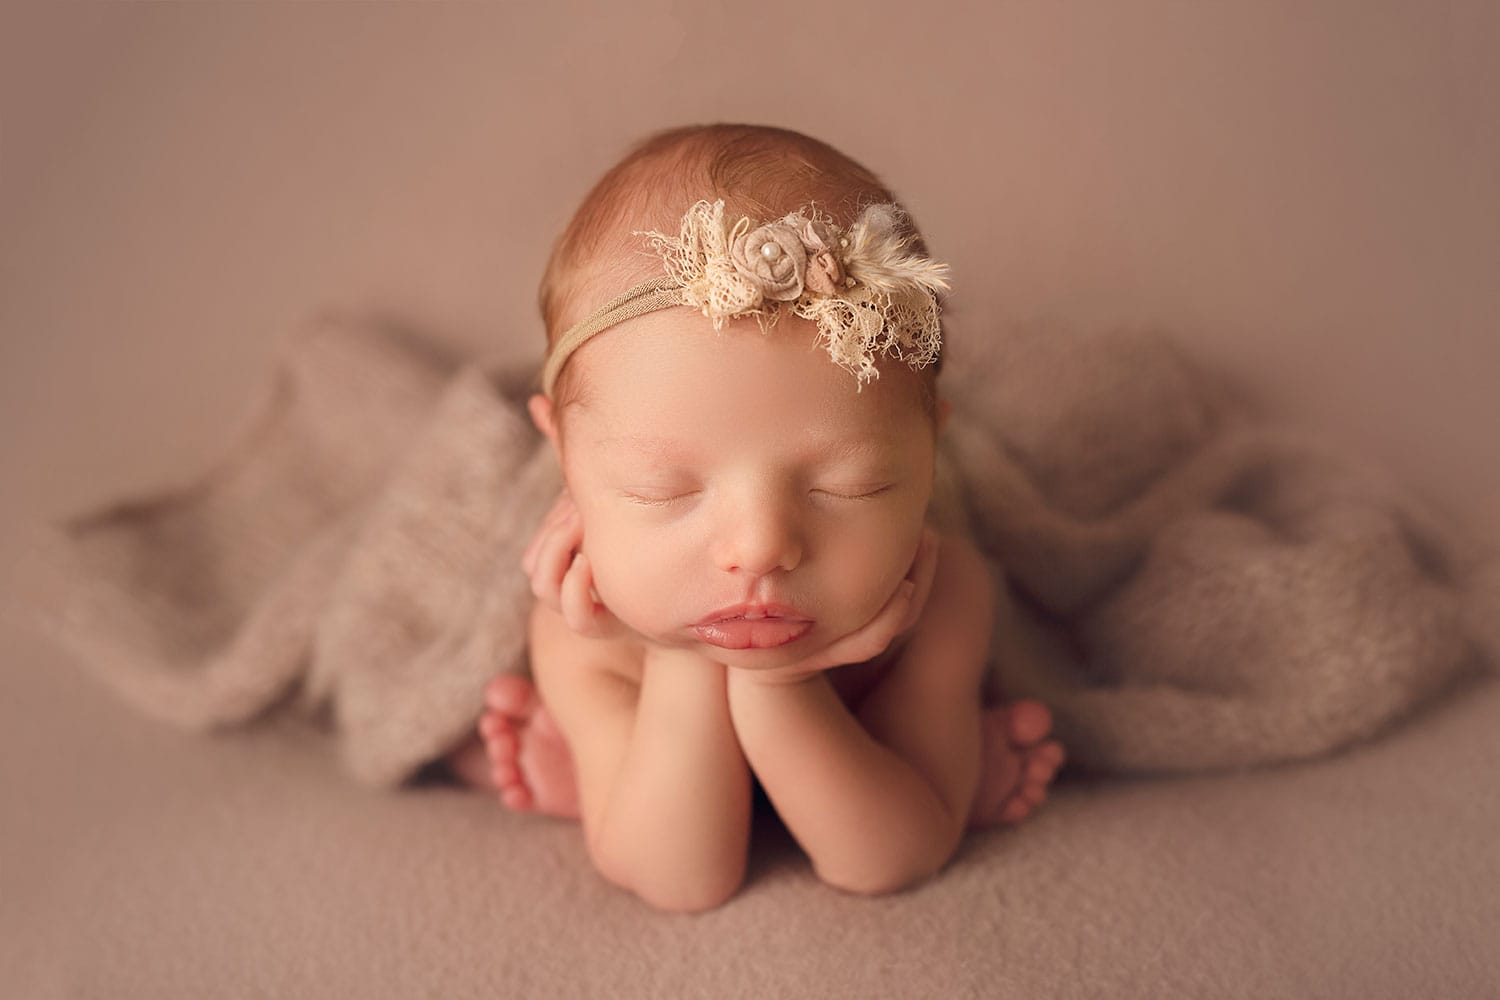 newborn baby girl in froggy pose on tan backdrop by Annie Whitaker Photography